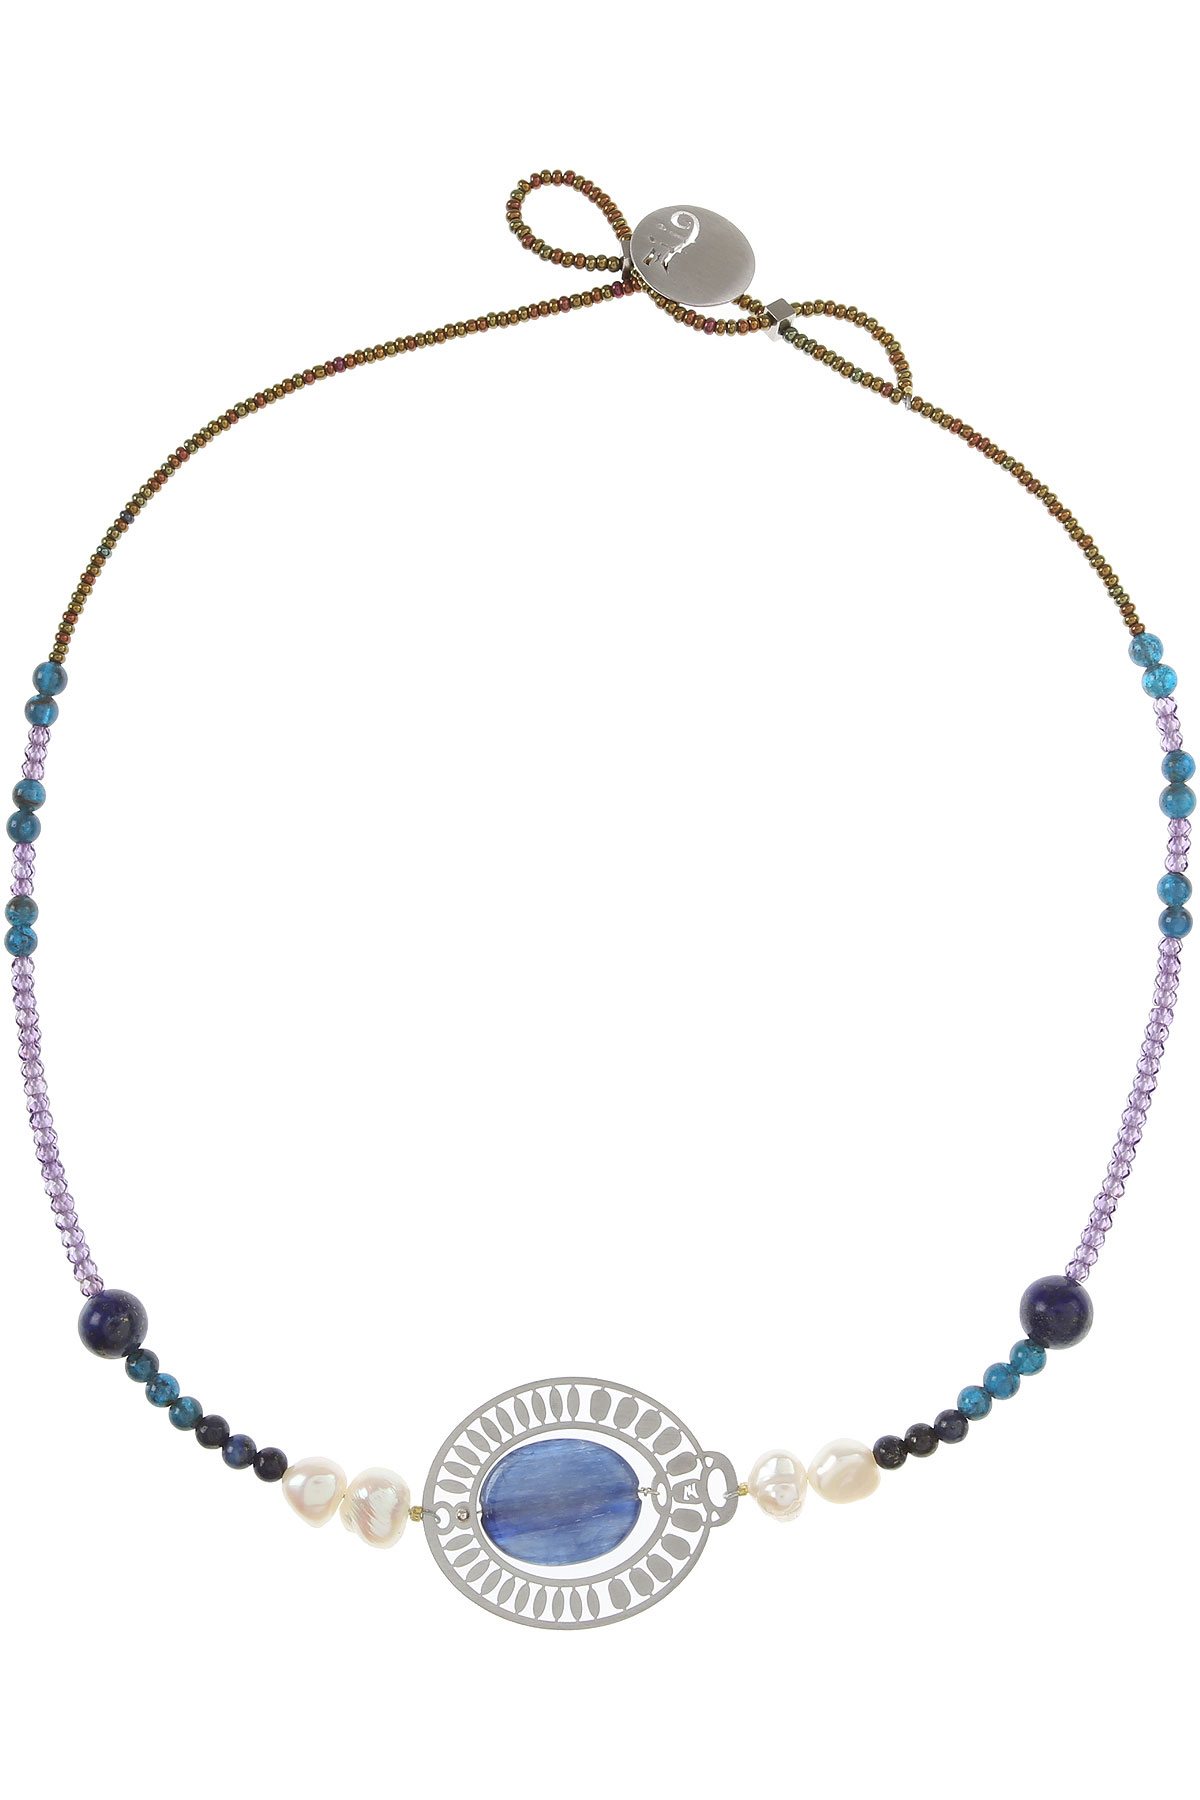 Ziio Jewellery Necklaces On Sale, Blue, Apatite, 2019